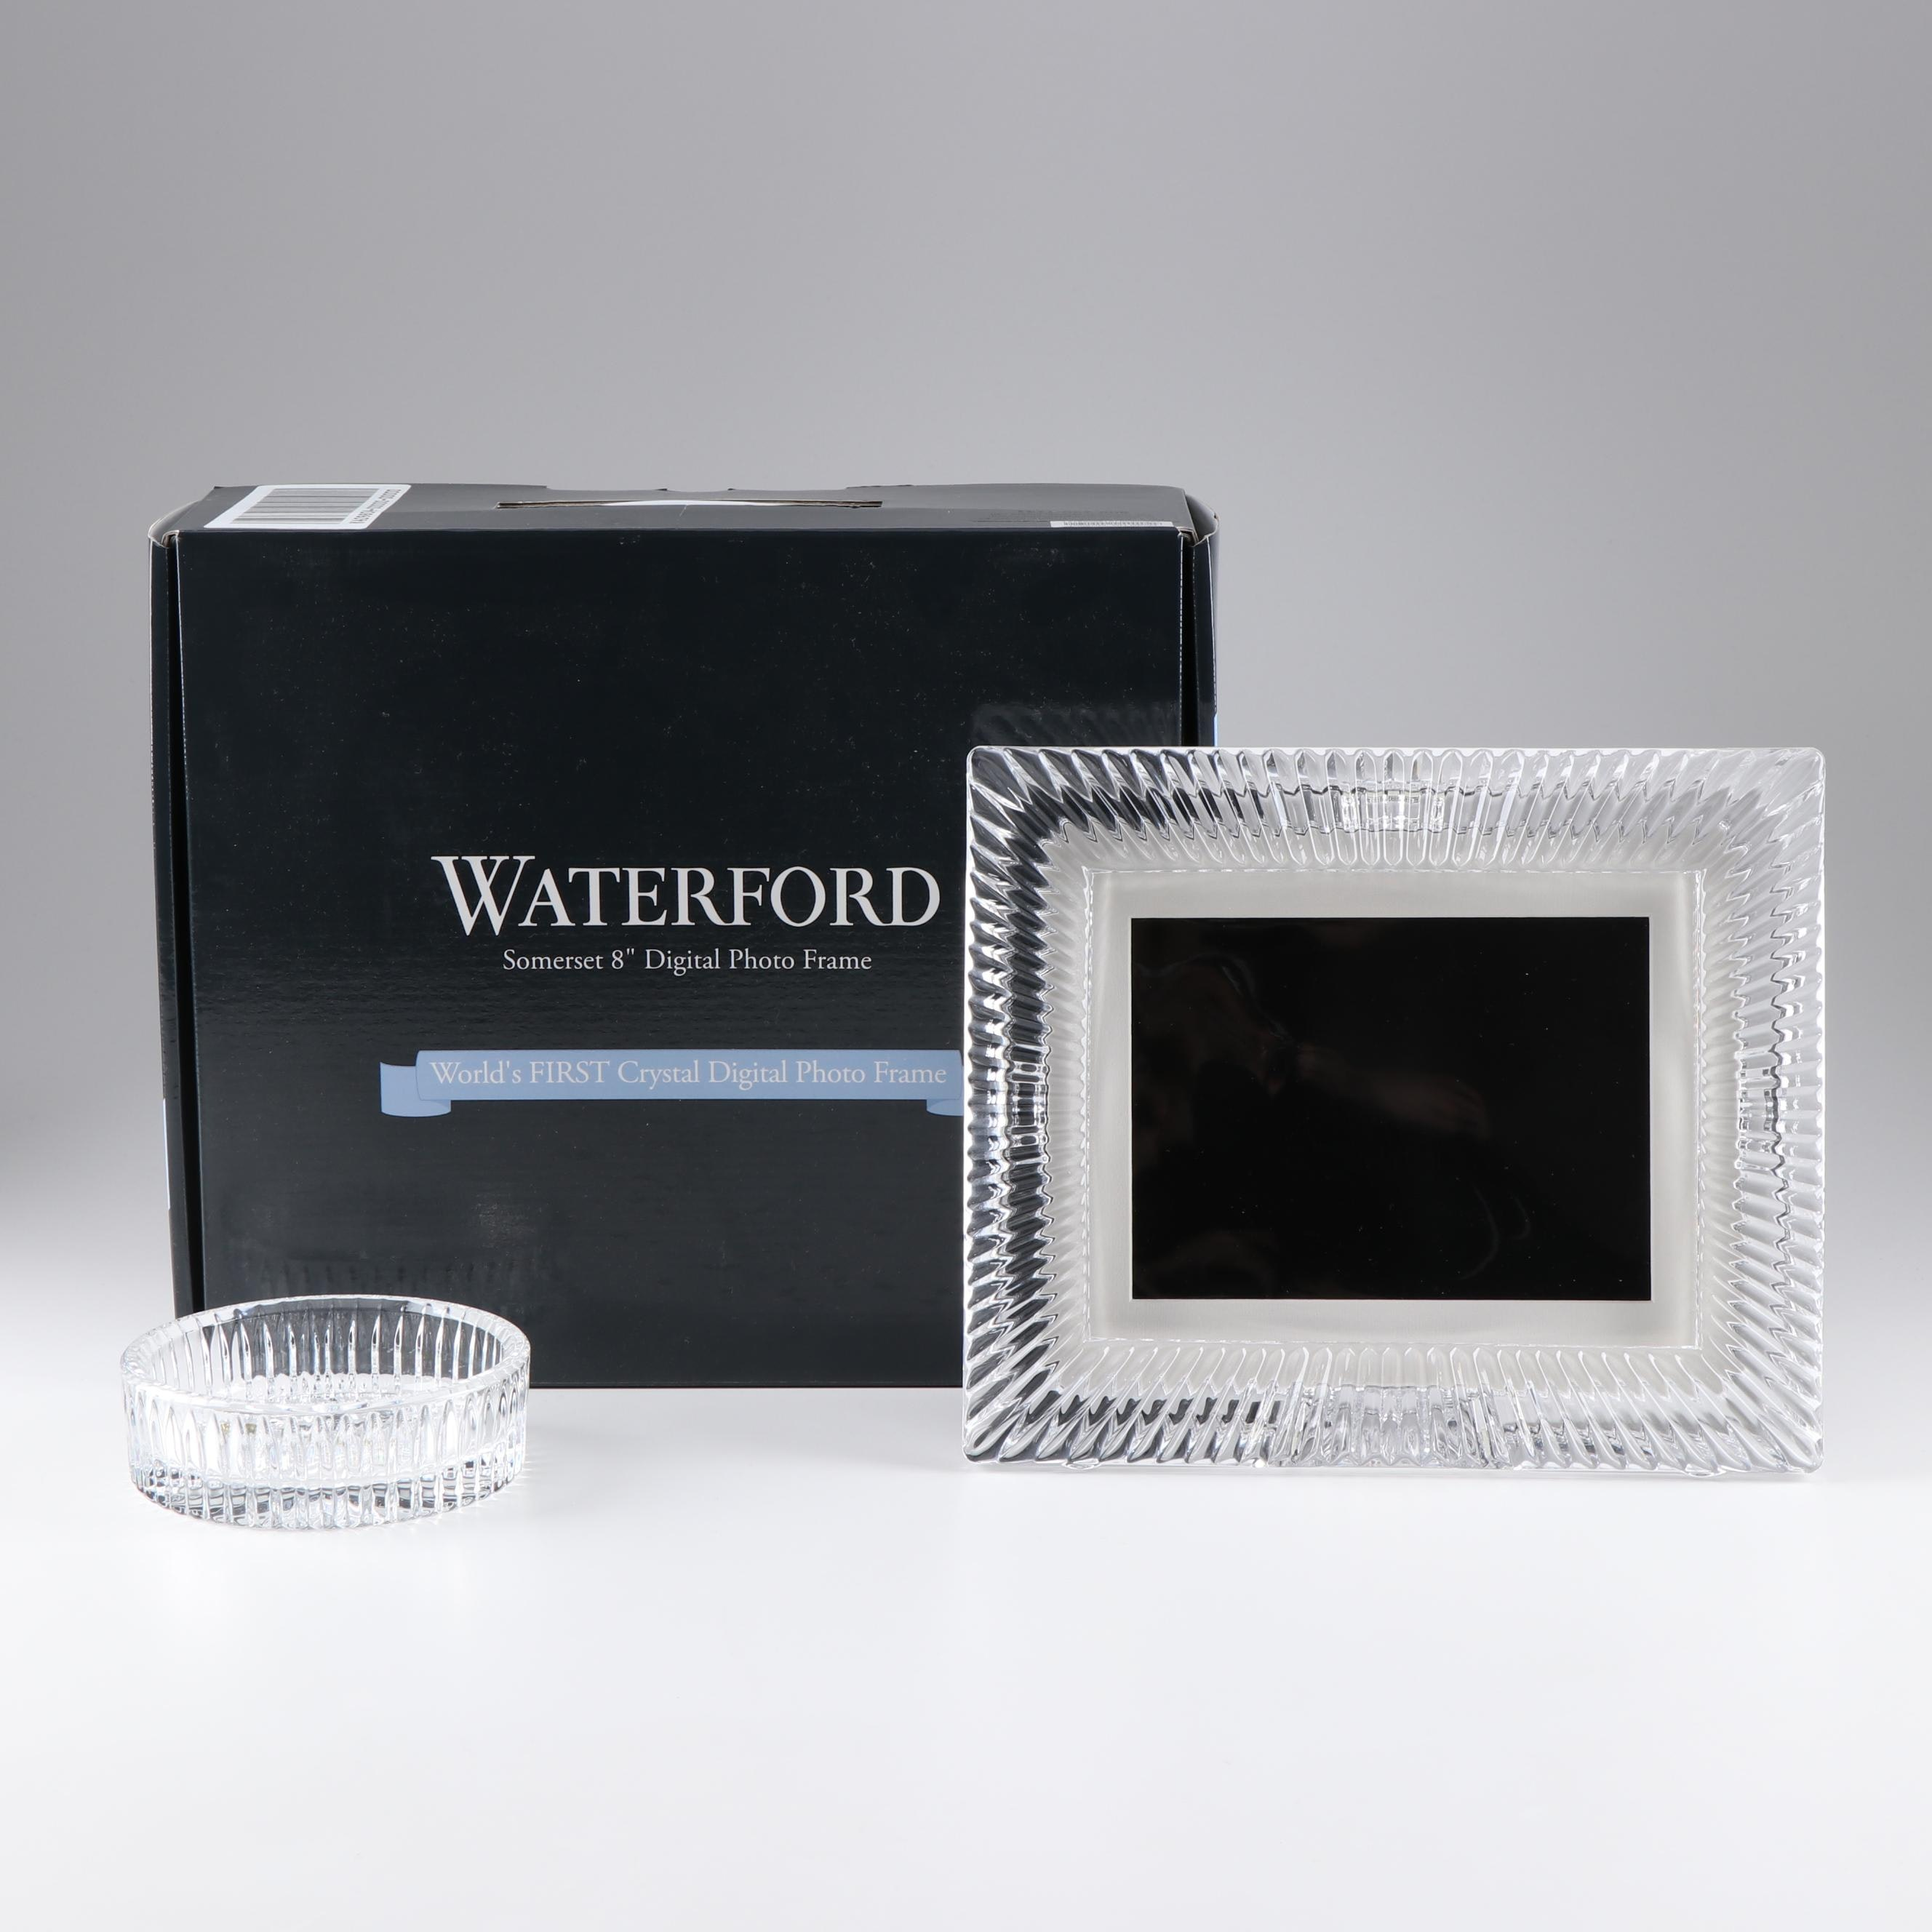 Waterford Digital Photo Frame and an Ashtray